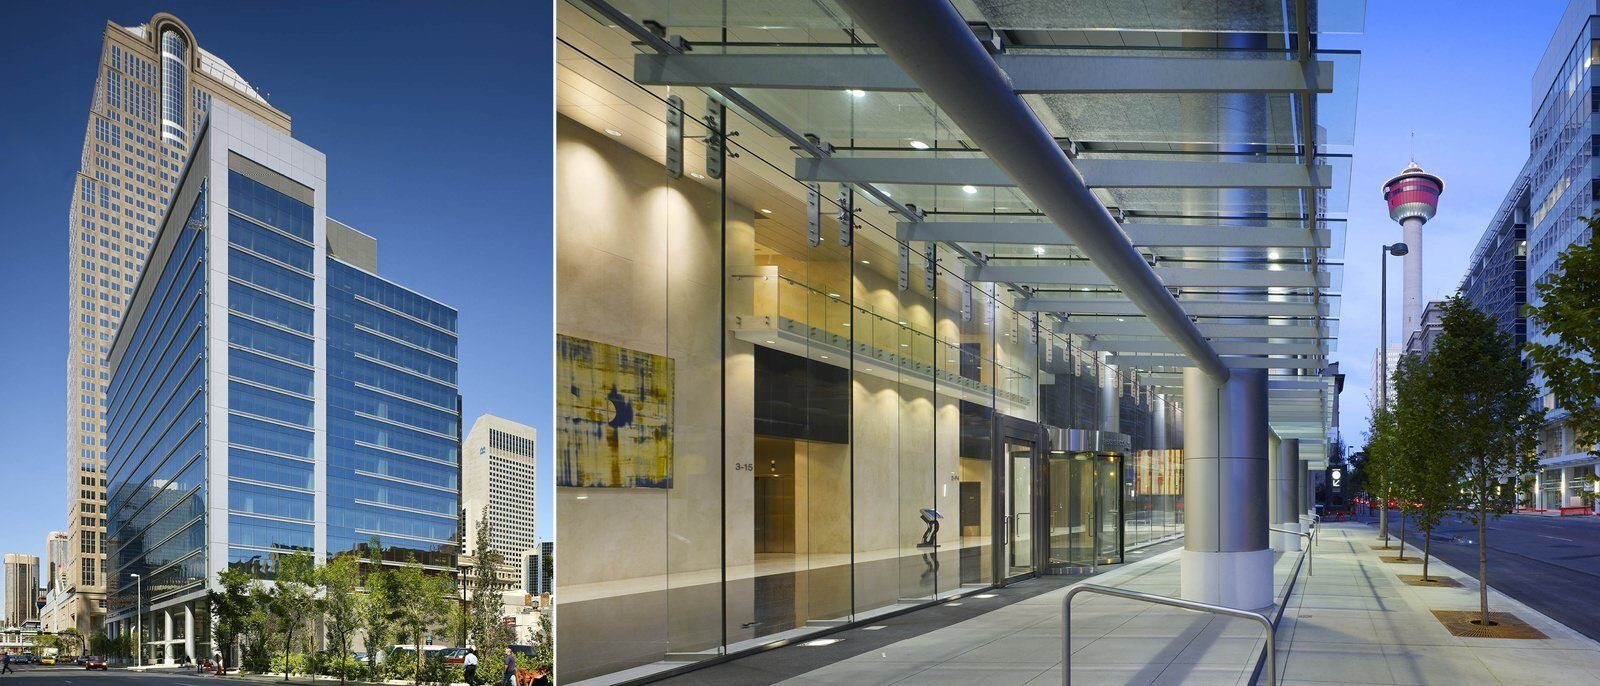 Two exterior shots of the building. One shows the entire building, the other shows the entrance from the sidewalk.